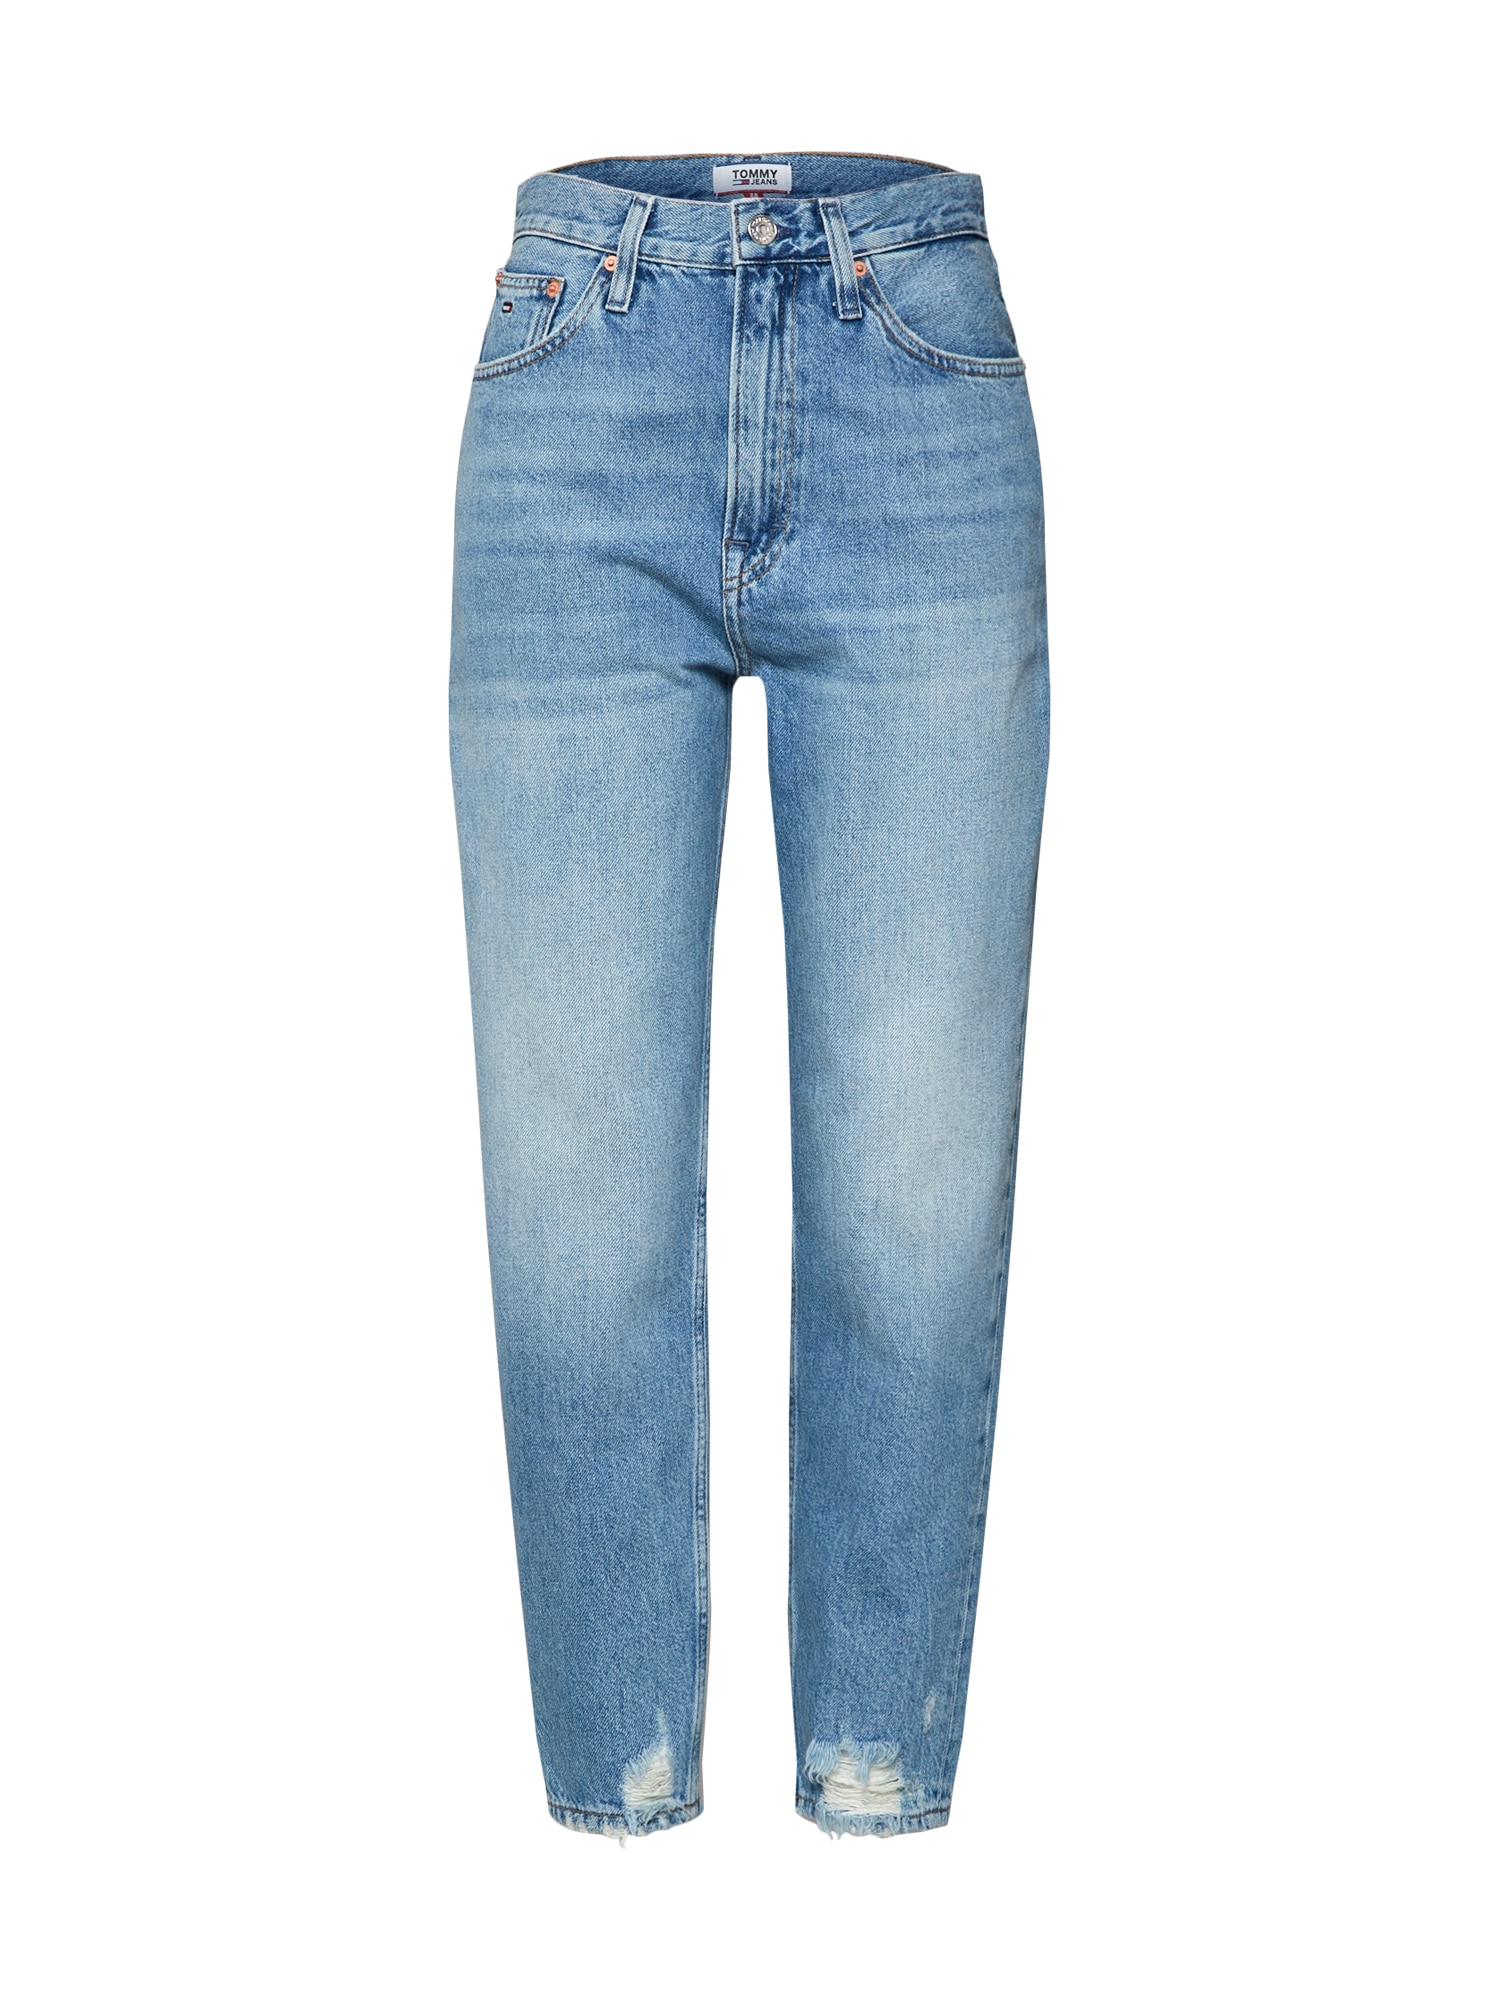 tommy jeans - Jeans ´Mom Jeans TJ 2004´